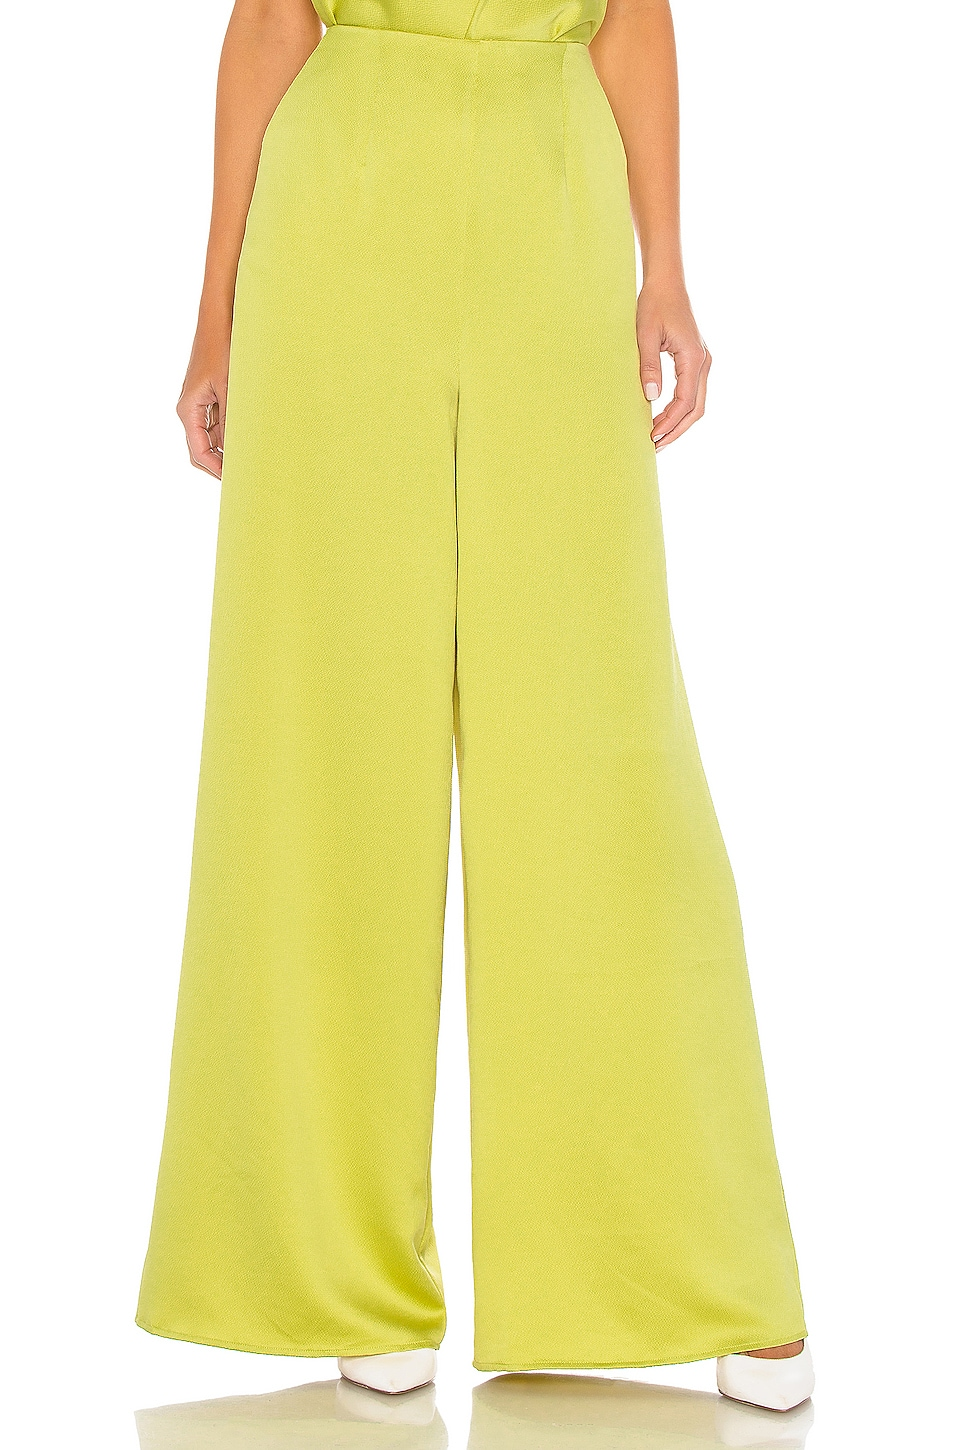 L'Academie The Orlina Pant in Apple Green